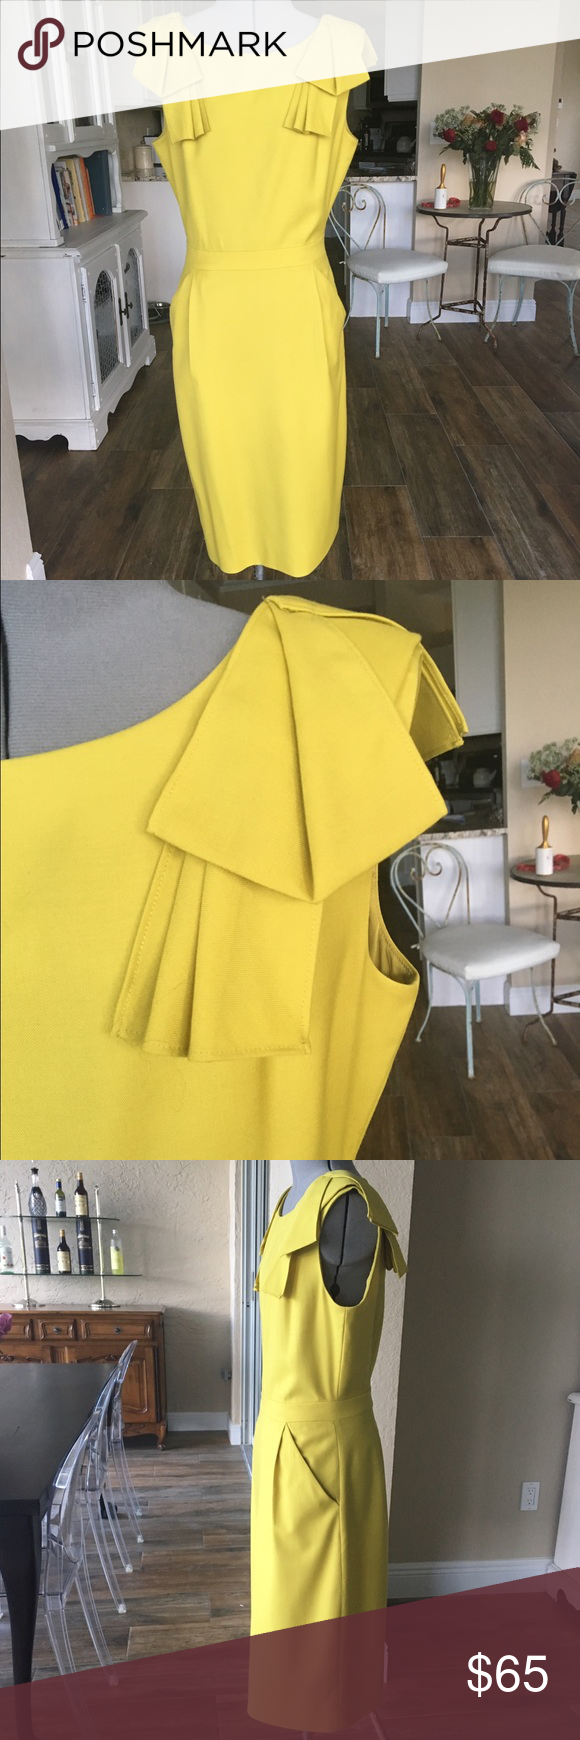 J Crew origami bow sleeve dress This dress is beautiful! It is fitted through the waist and straight to the knee. The bow sleeves make this so interesting and classy. Wear year round. You know you need this! J. Crew Dresses Midi